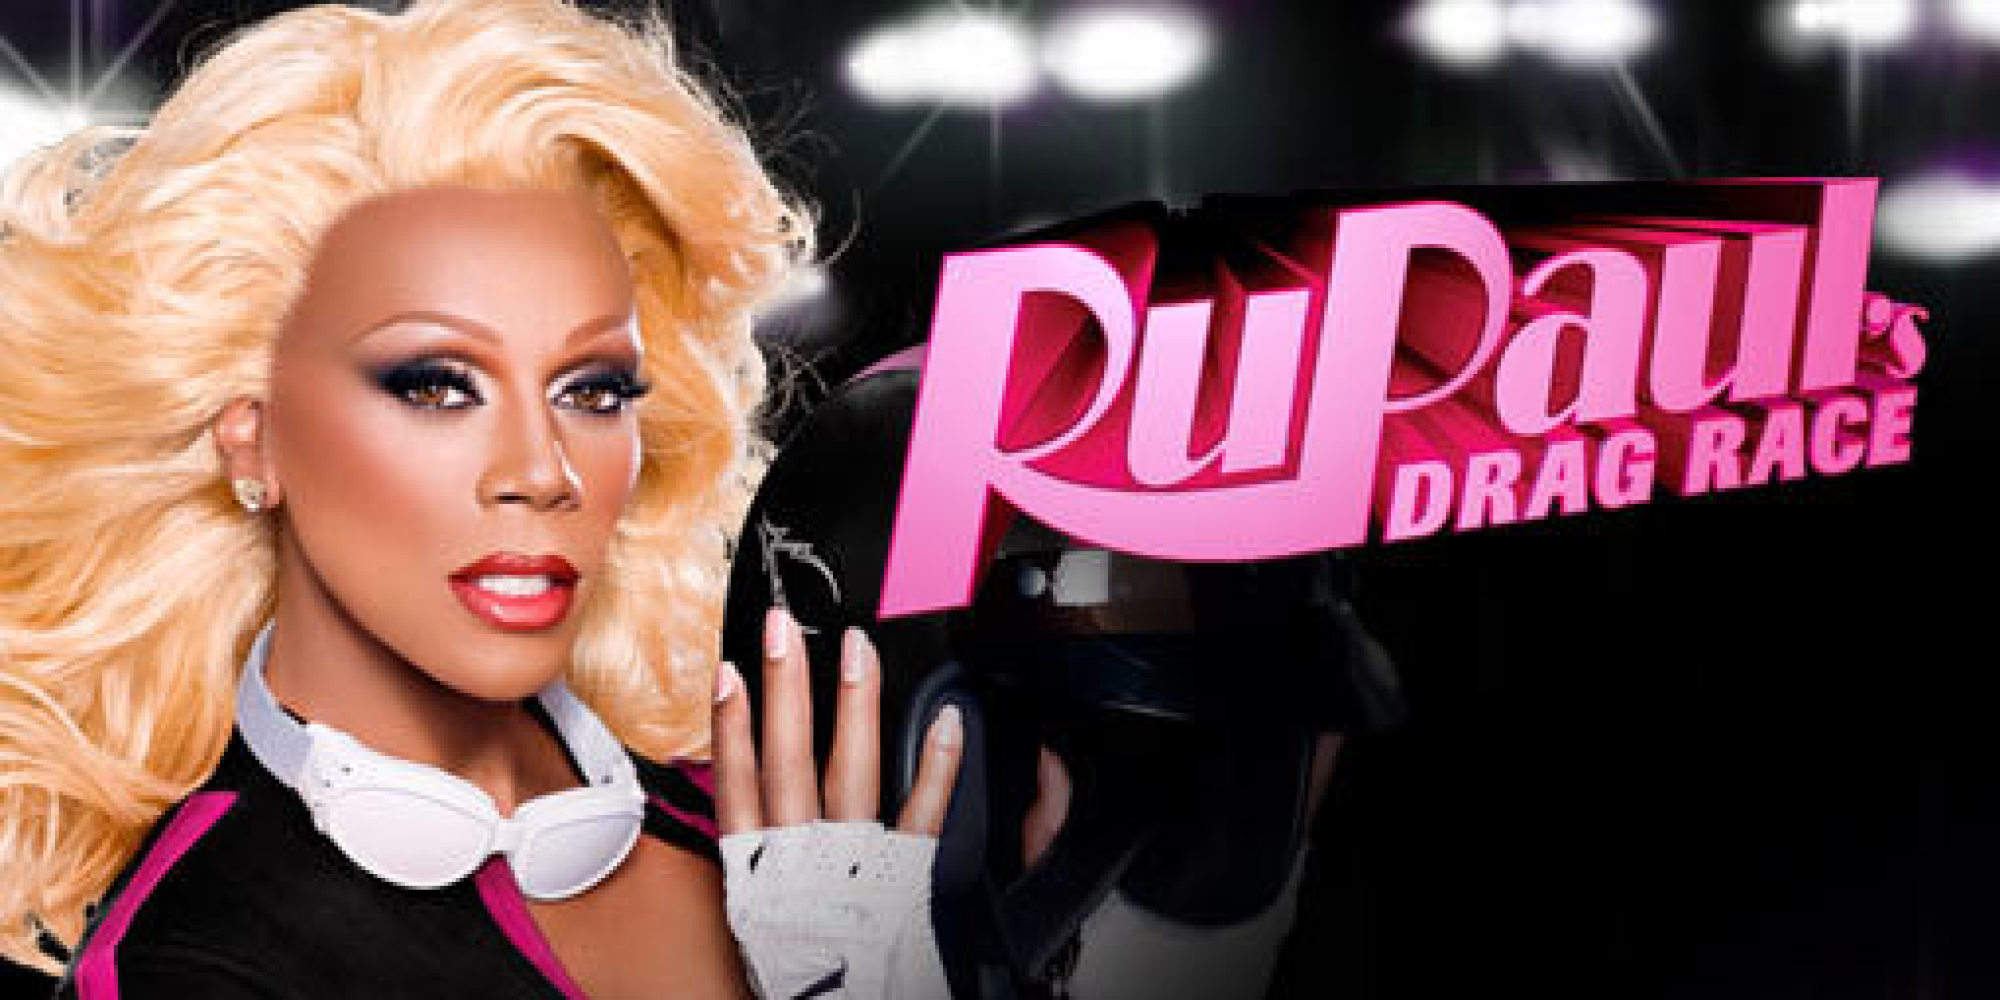 A promo shot for RuPaul's Drag Race